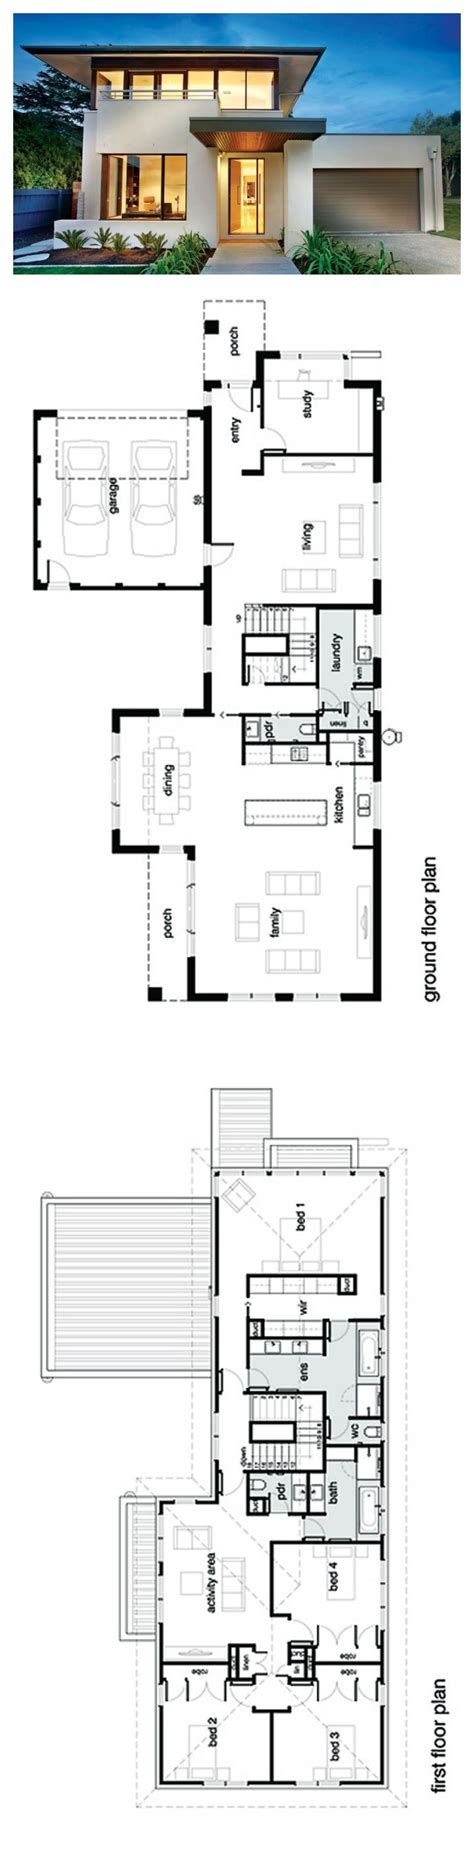 modern houses floor plans the 25 best ideas about modern house plans on pinterest